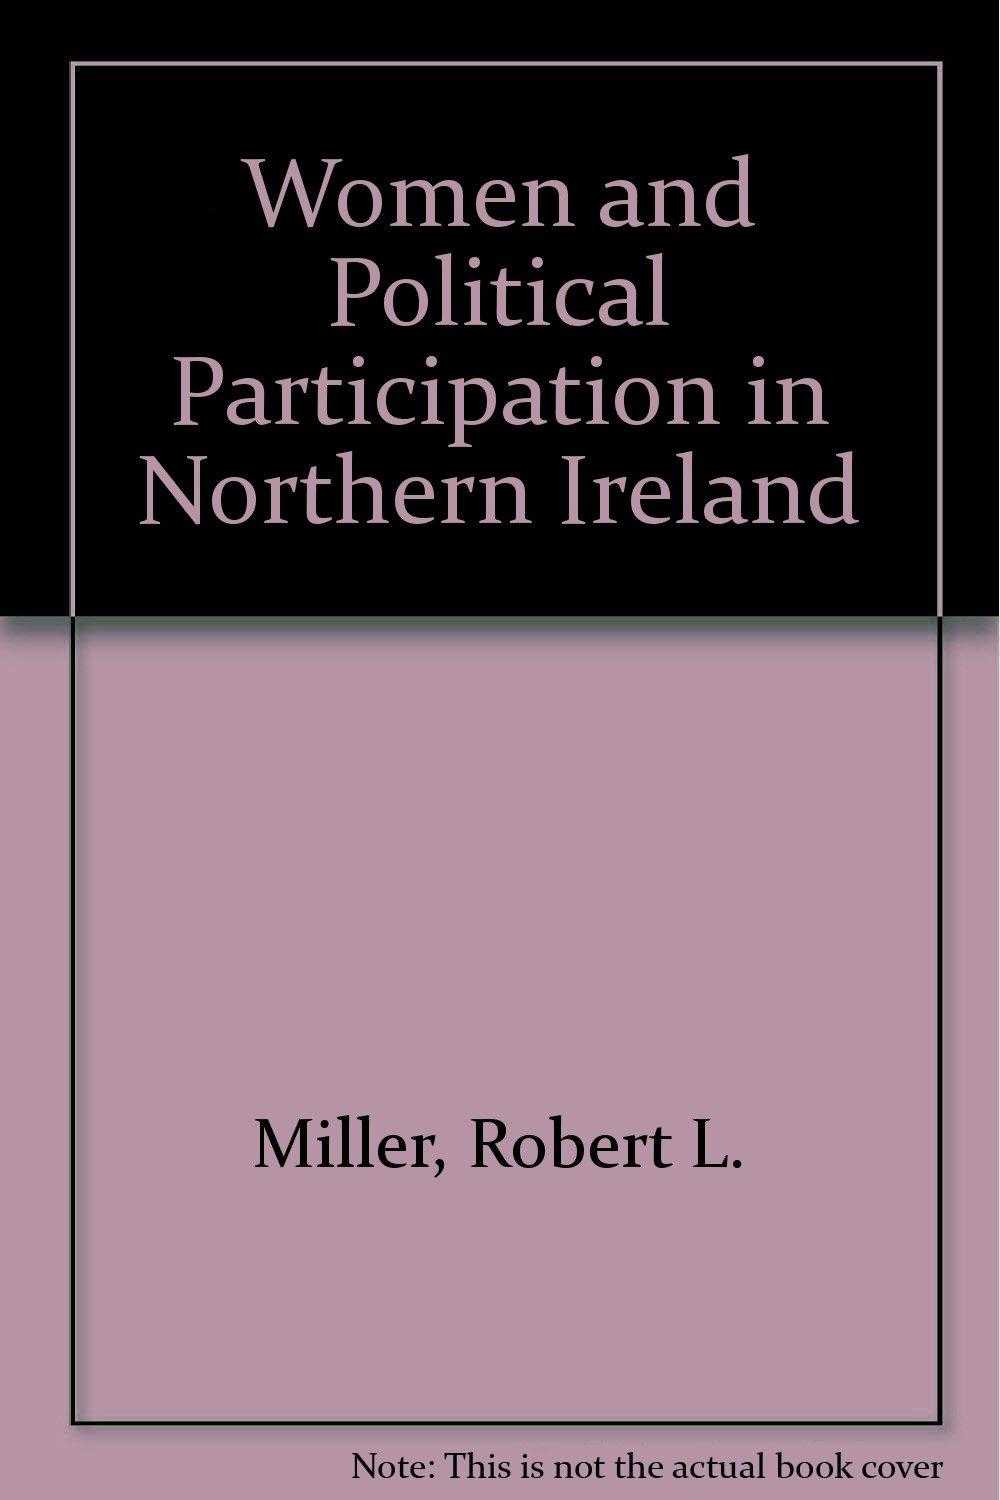 Women and Political Participation in Northern Ireland, Miller, Robert L.